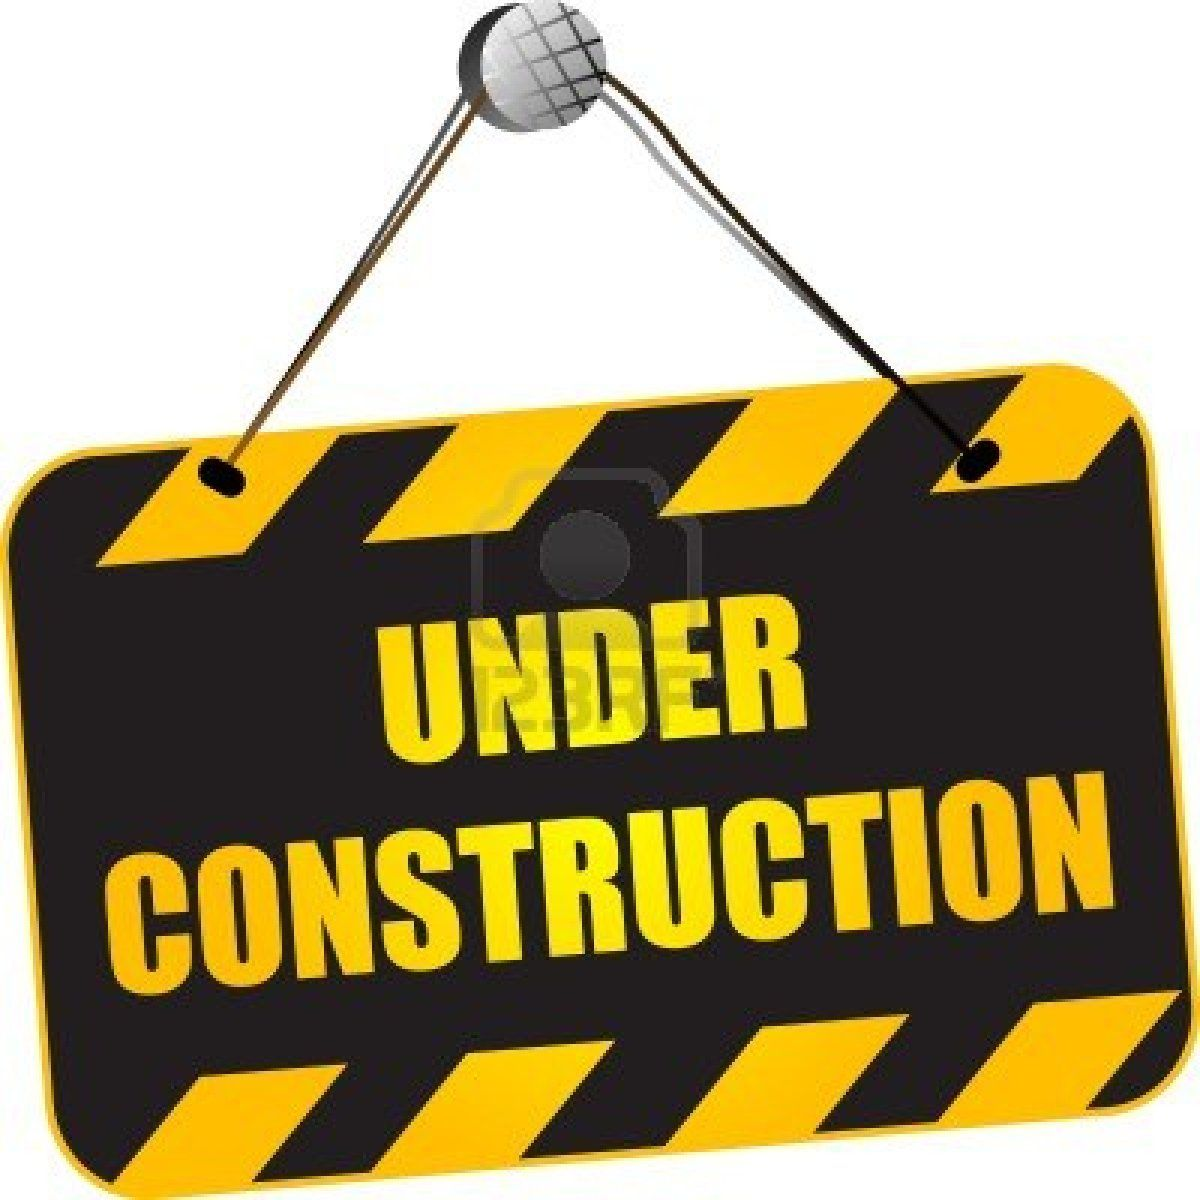 Due to ongoing construction at Denver Int'l Airport